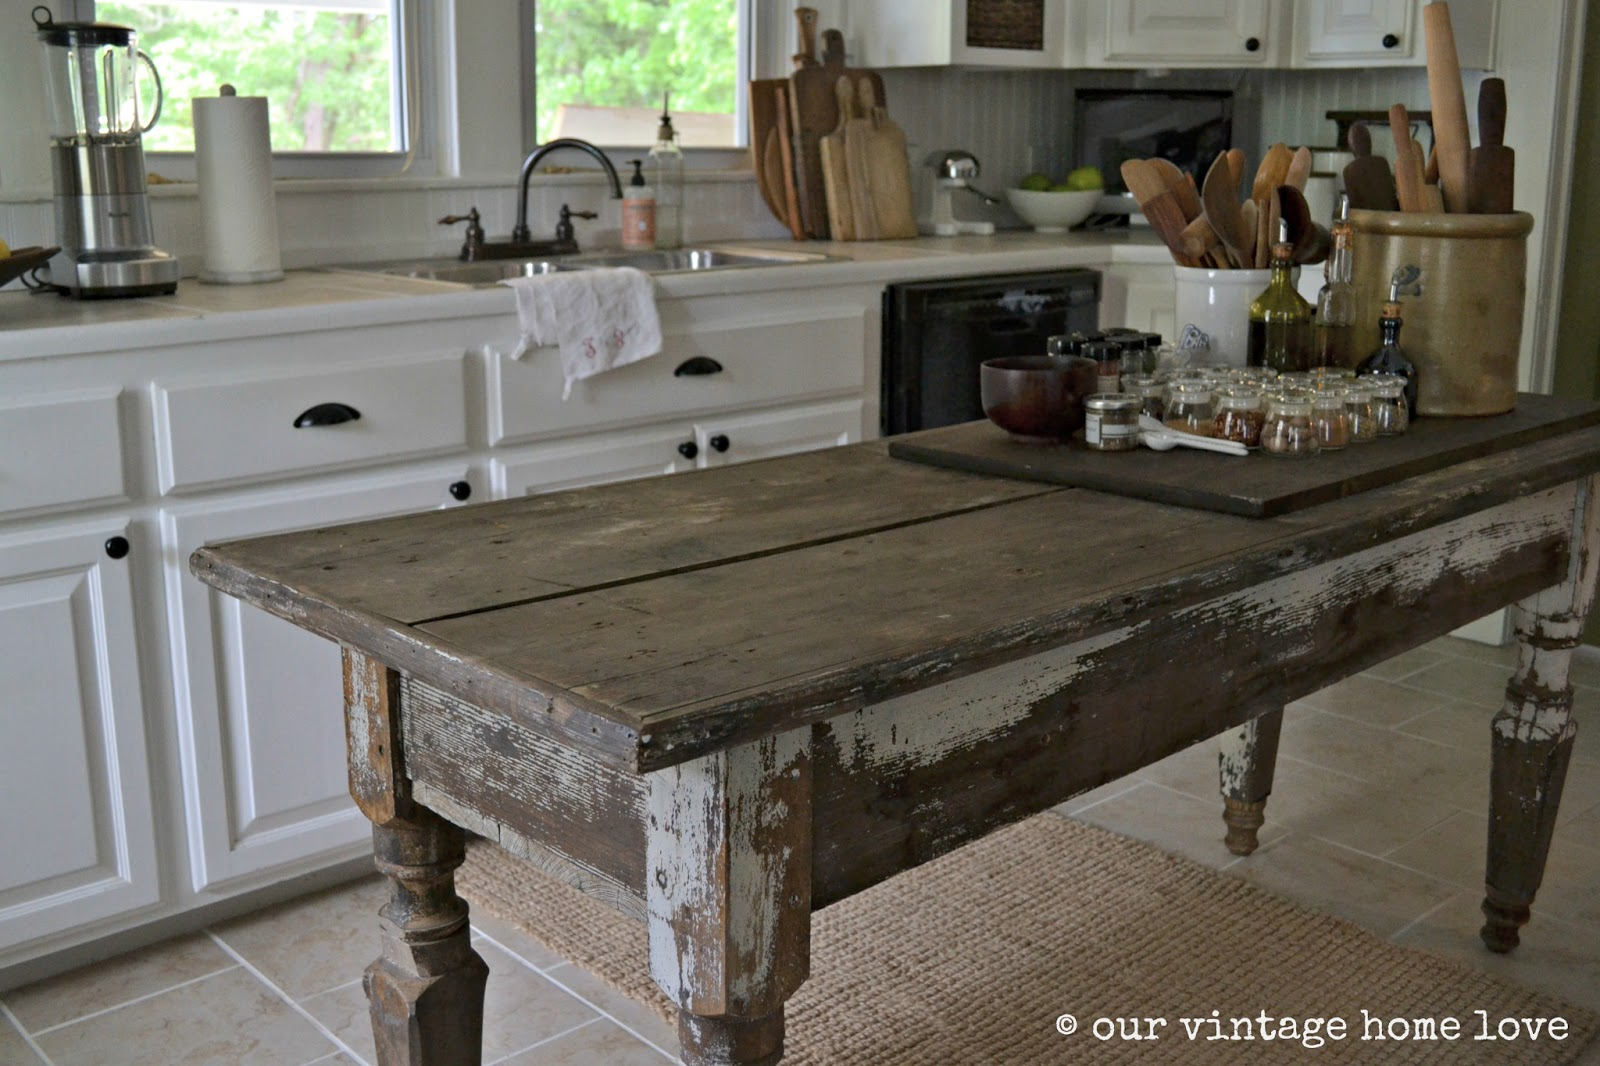 our vintage home love Farmhouse Table : 033 from ourvintagehomelove.blogspot.com size 1600 x 1066 jpeg 259kB